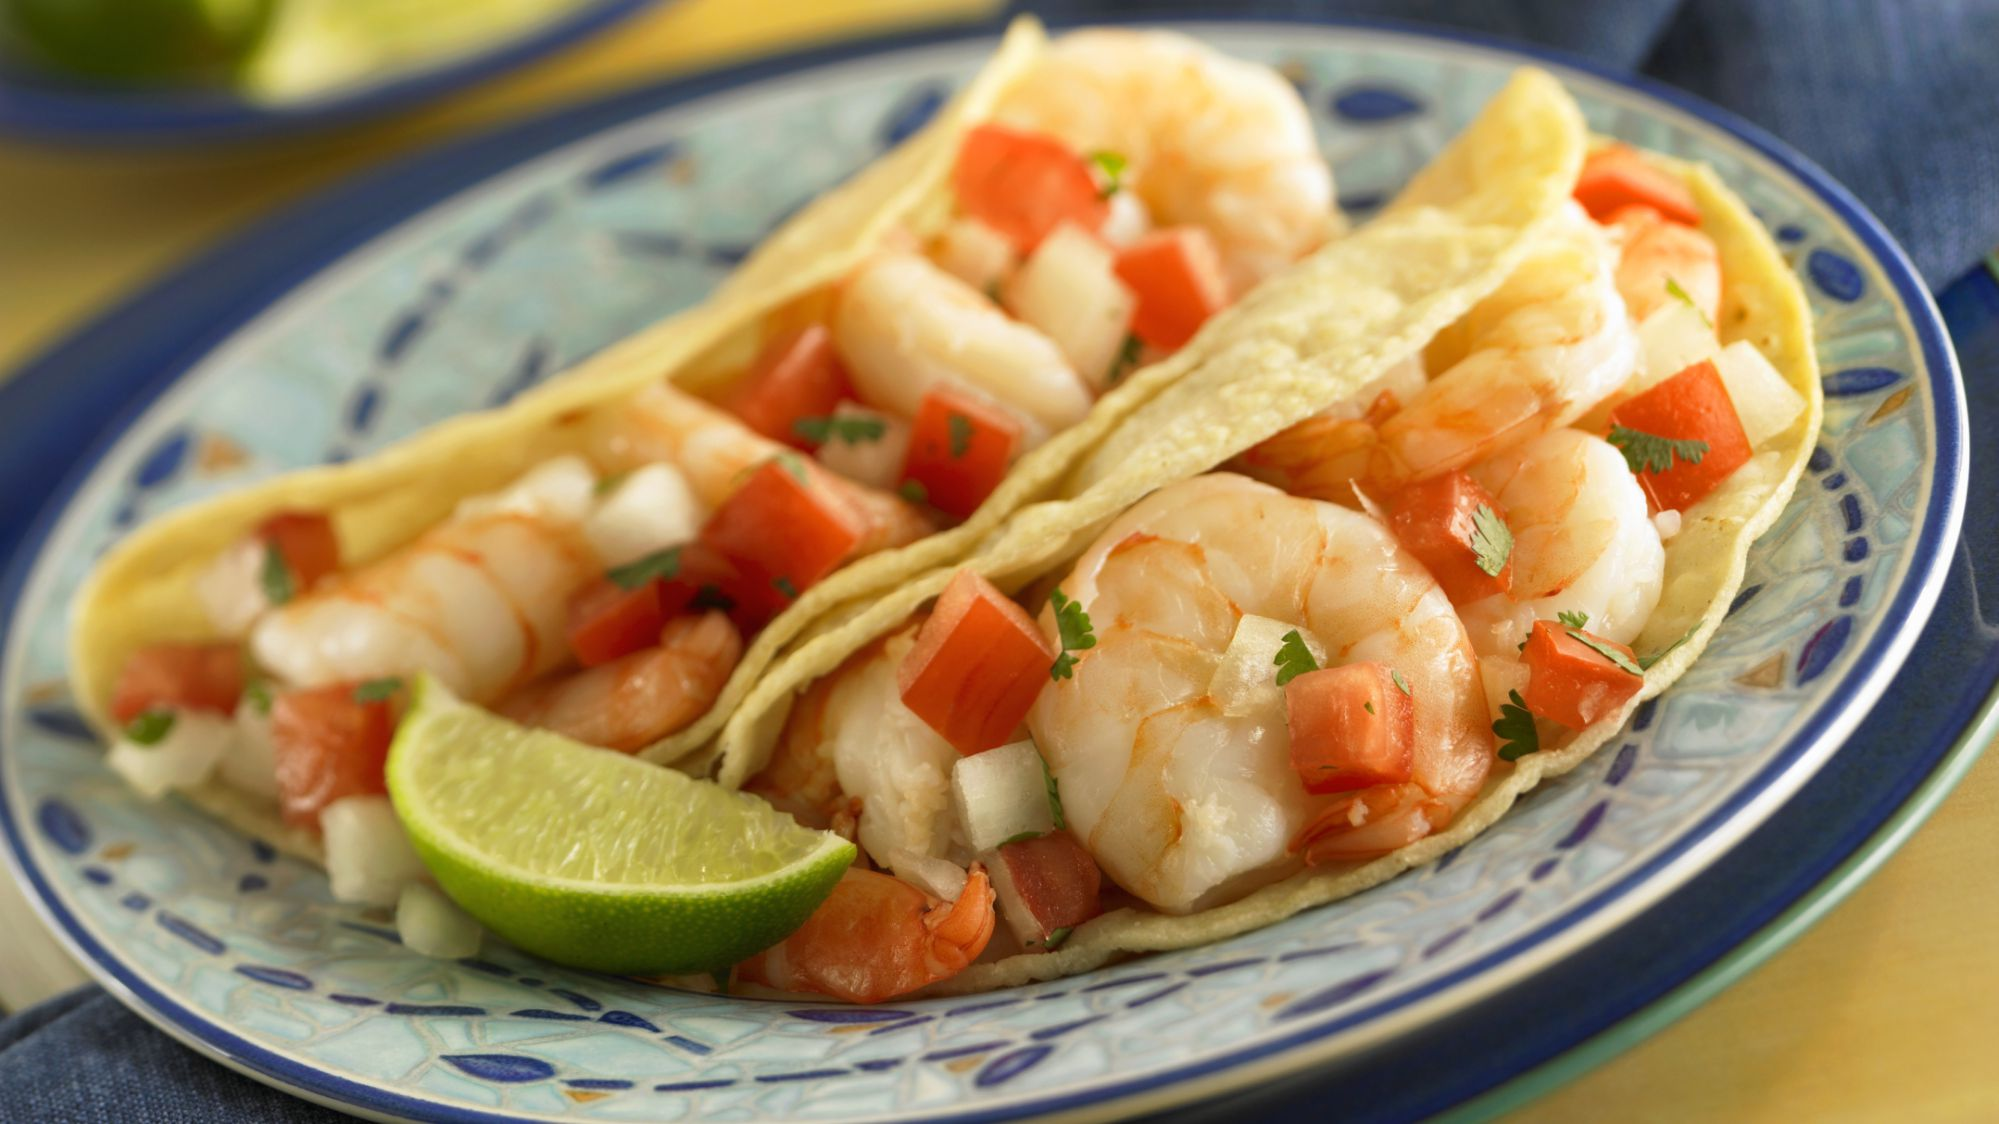 Mexican Food Nutrition: Menu Choices and Calories